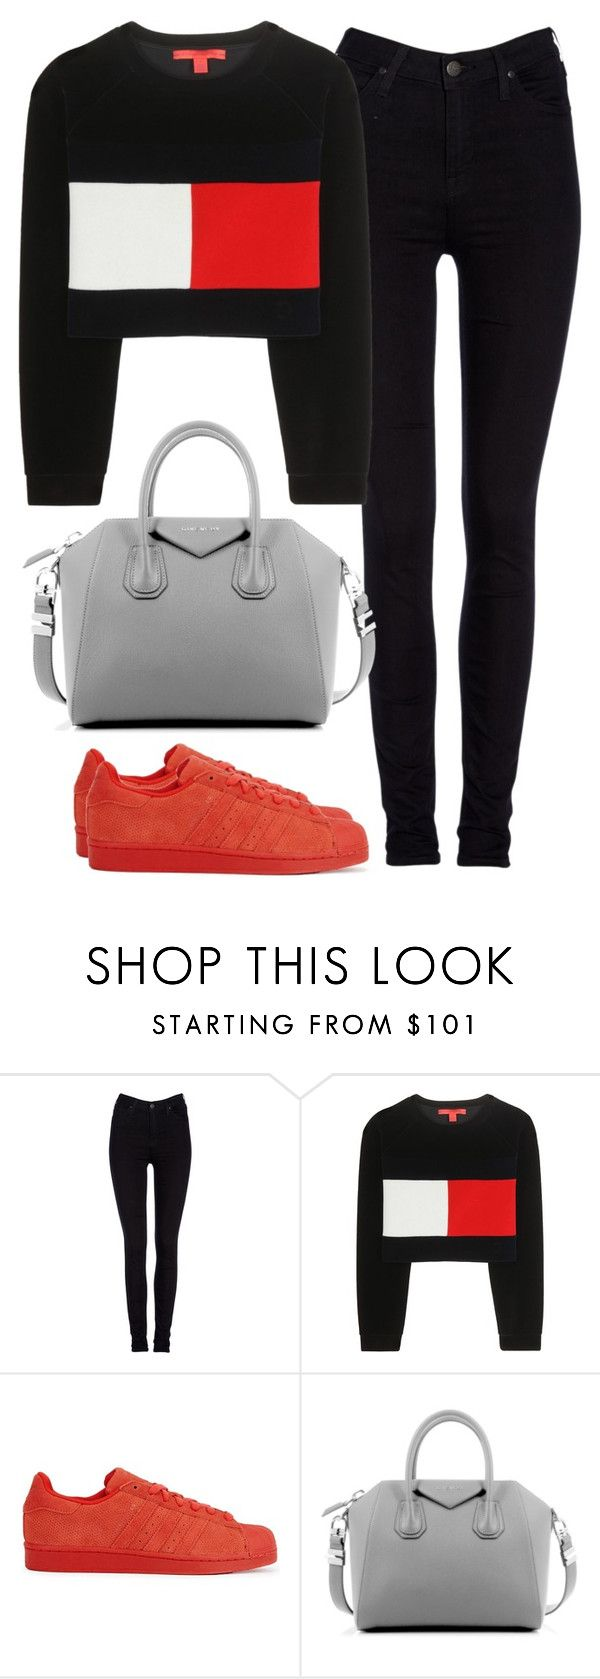 """Untitled #460"" by christyandnef on Polyvore featuring Lee, Tommy Hilfiger, adidas Originals, Givenchy, women's clothing, women, female, woman, misses and juniors"